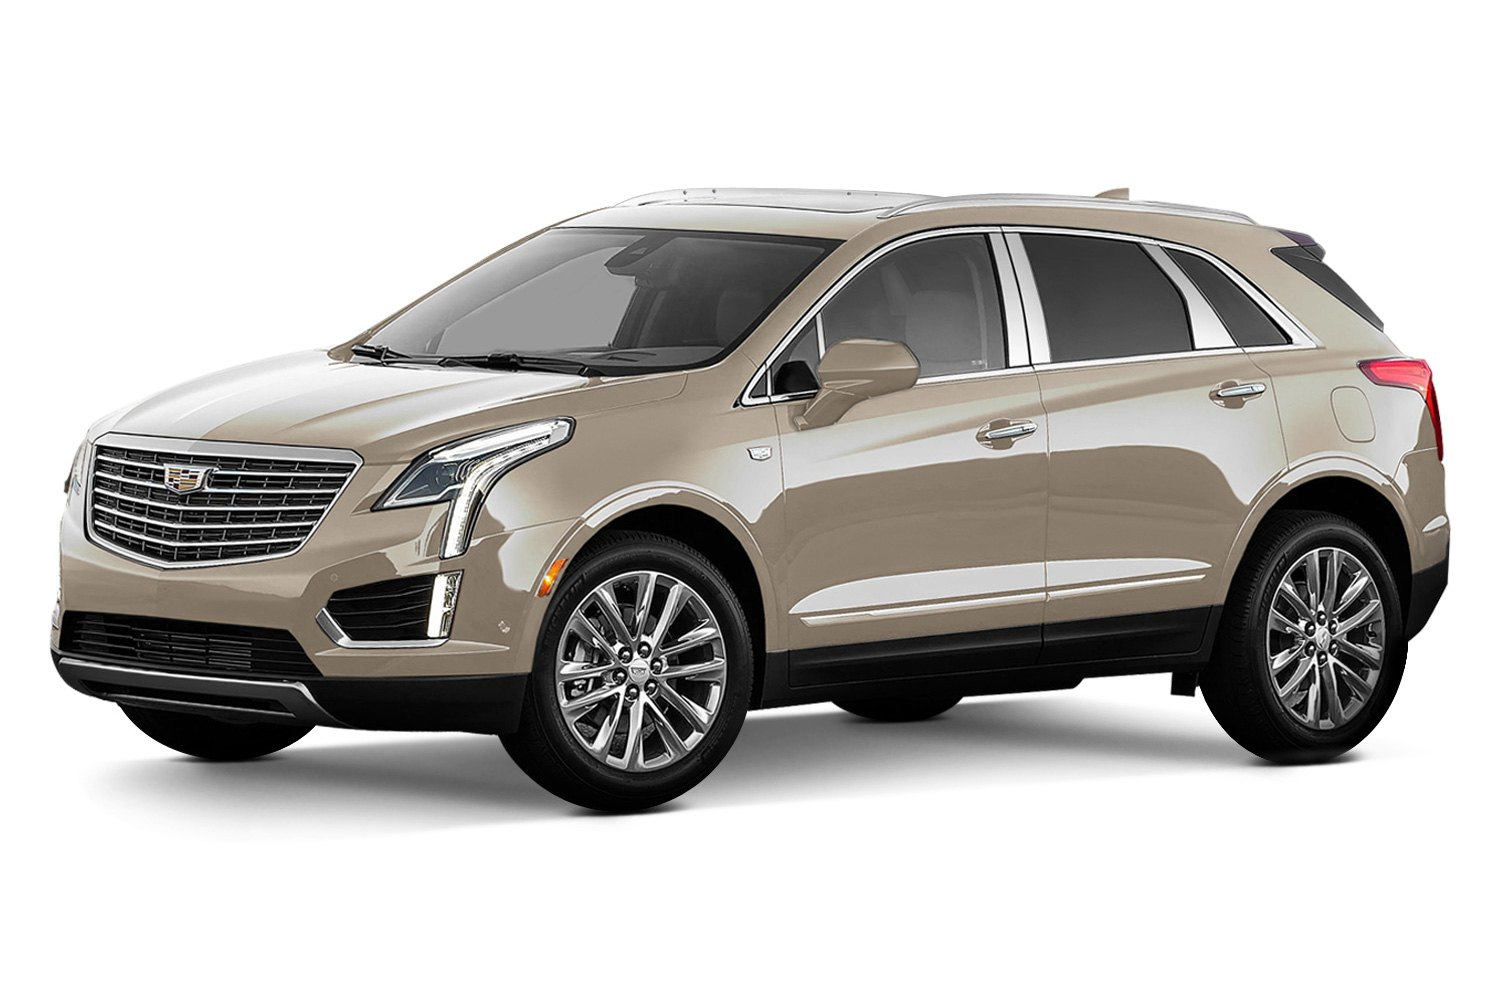 saa cadillac xt5 2017 polished pillar posts. Black Bedroom Furniture Sets. Home Design Ideas